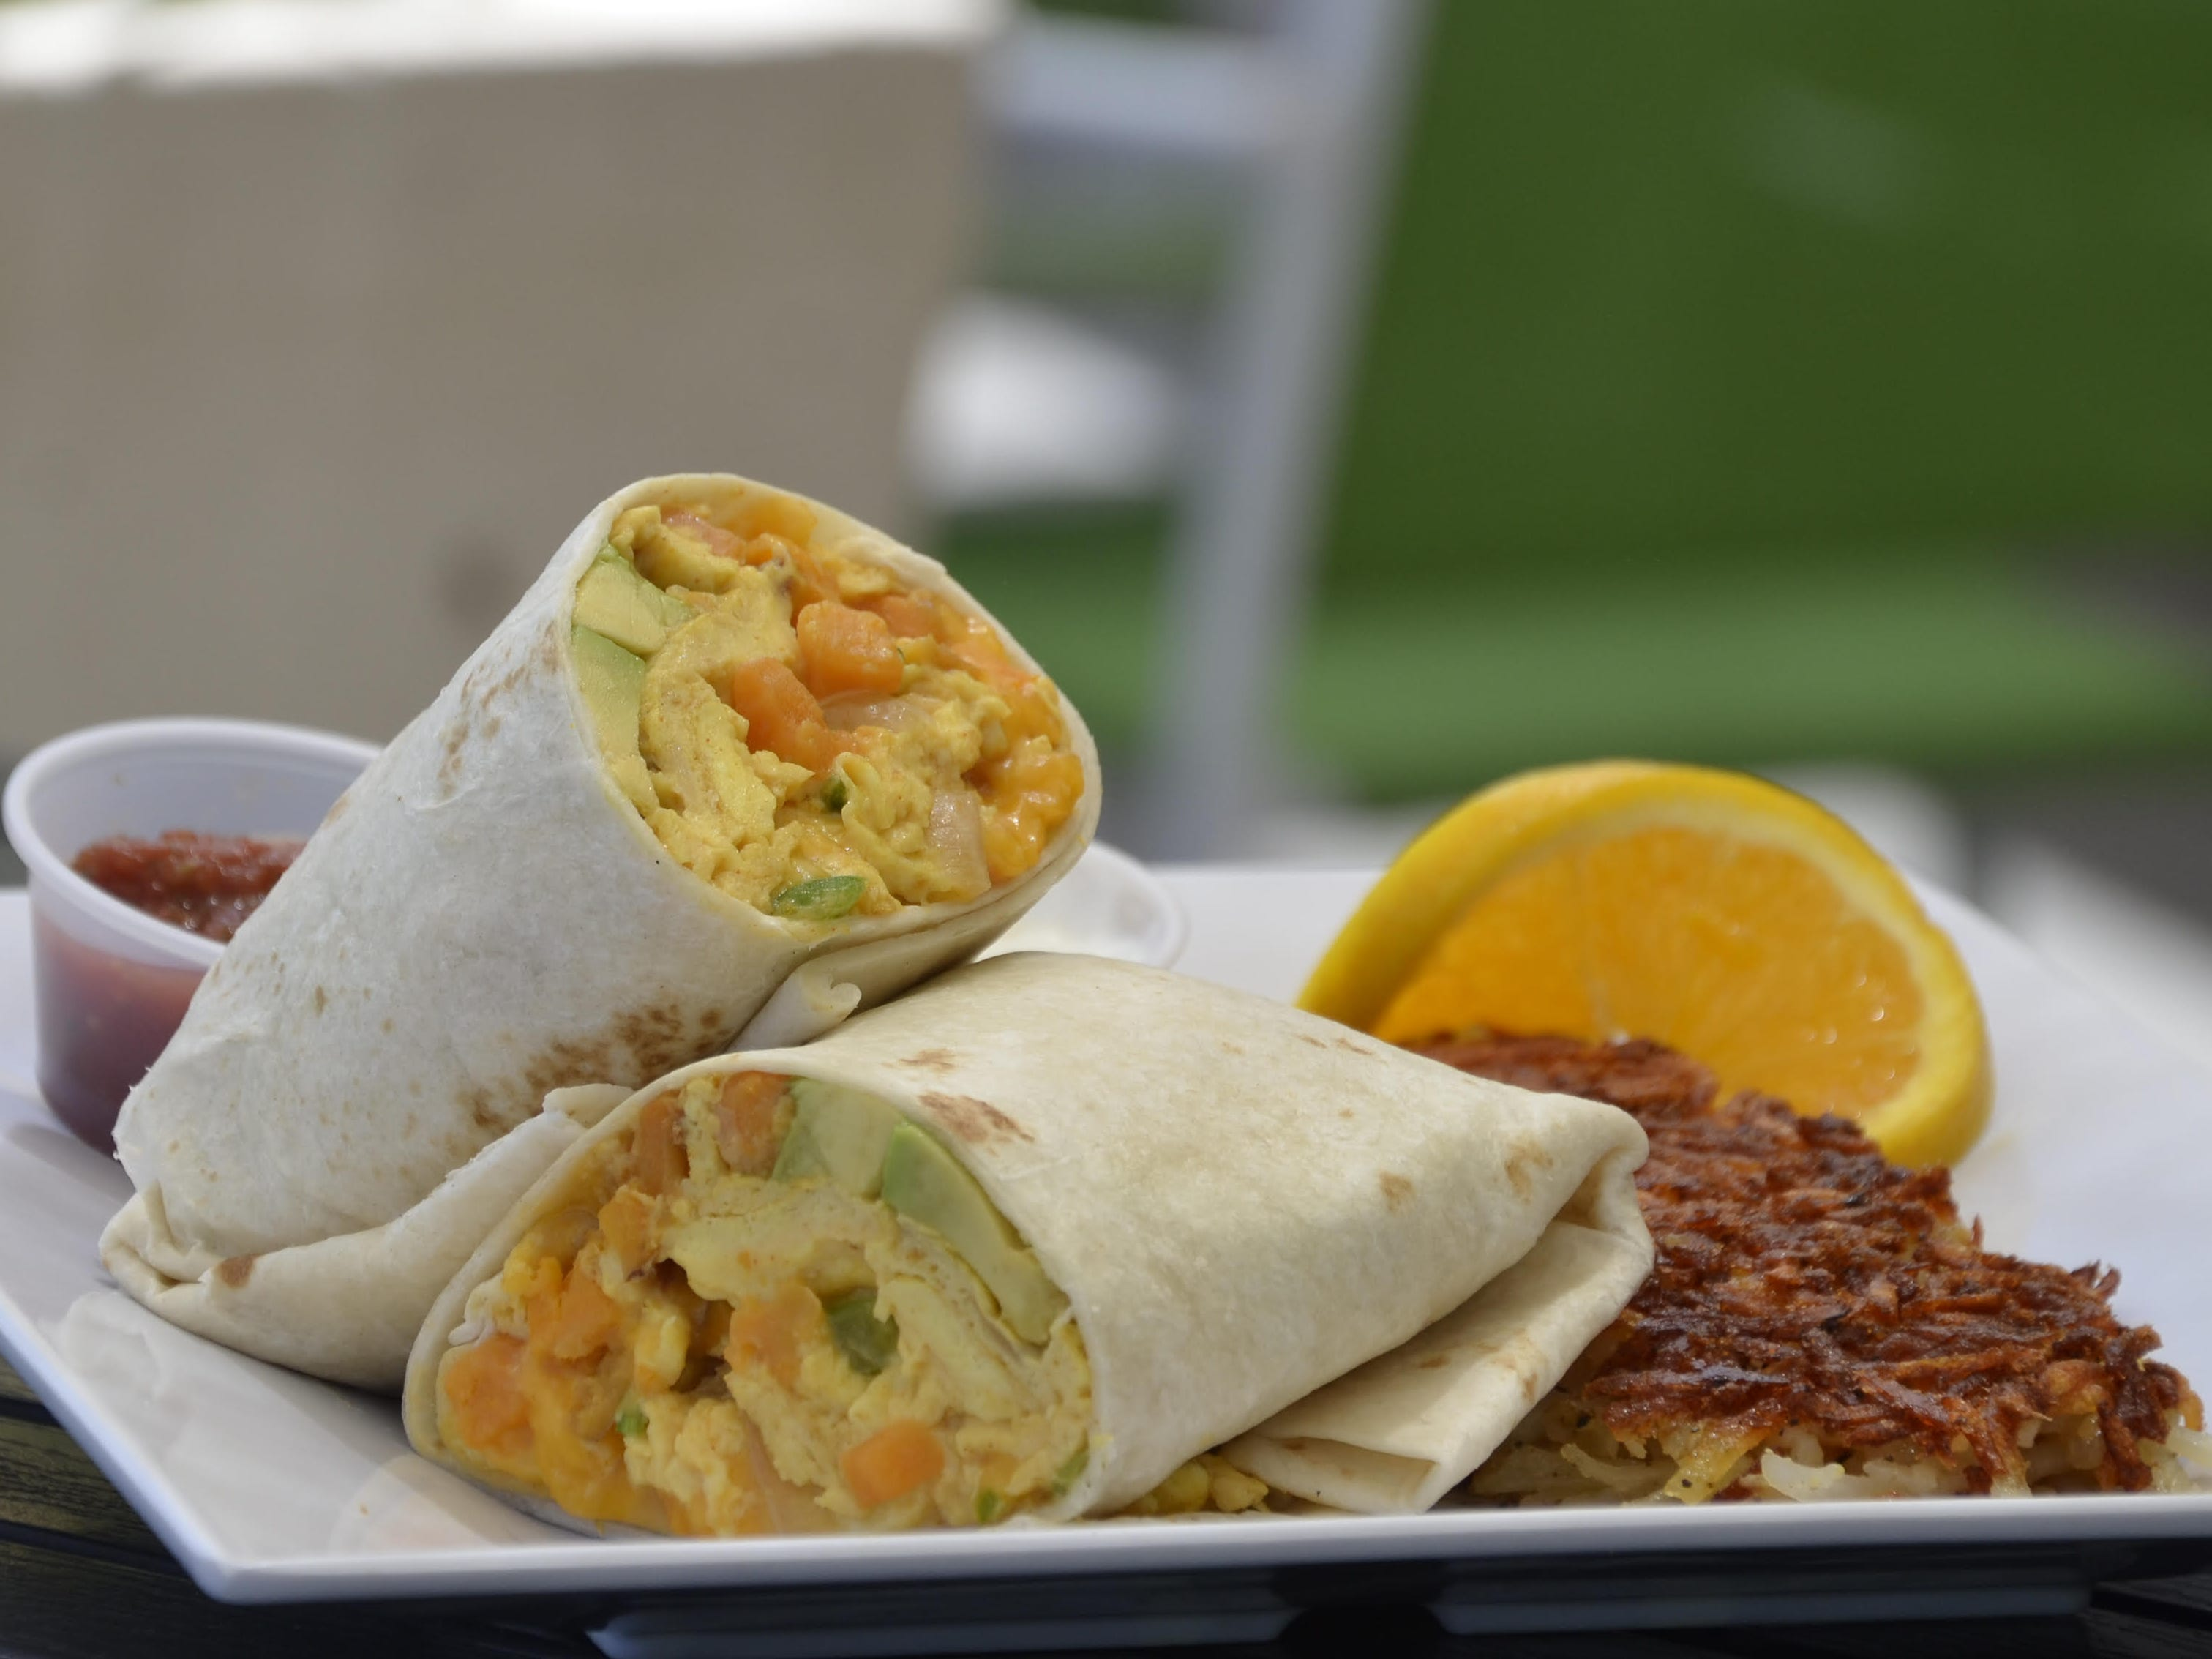 The harvest burrito at Scramble - A Breakfast & Lunch Joint.